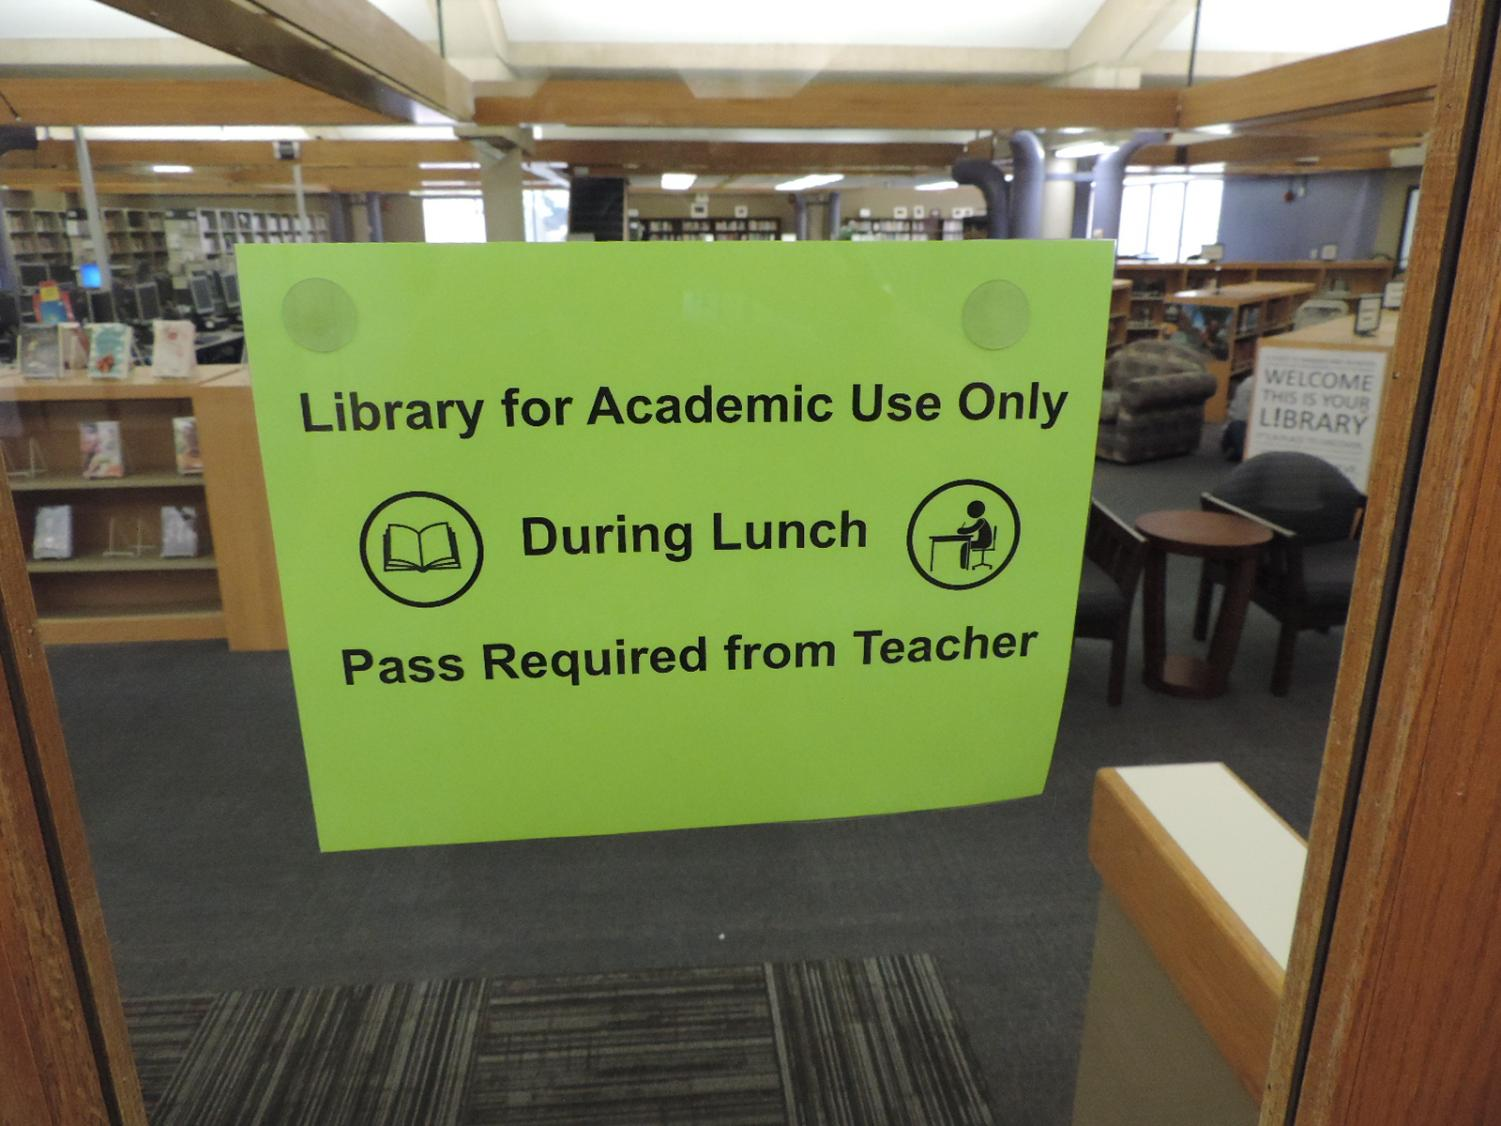 This sign located on the library doors sends a confusing message to students regarding their access to library resources. Students are able to use the library during lunch for academic purposes.